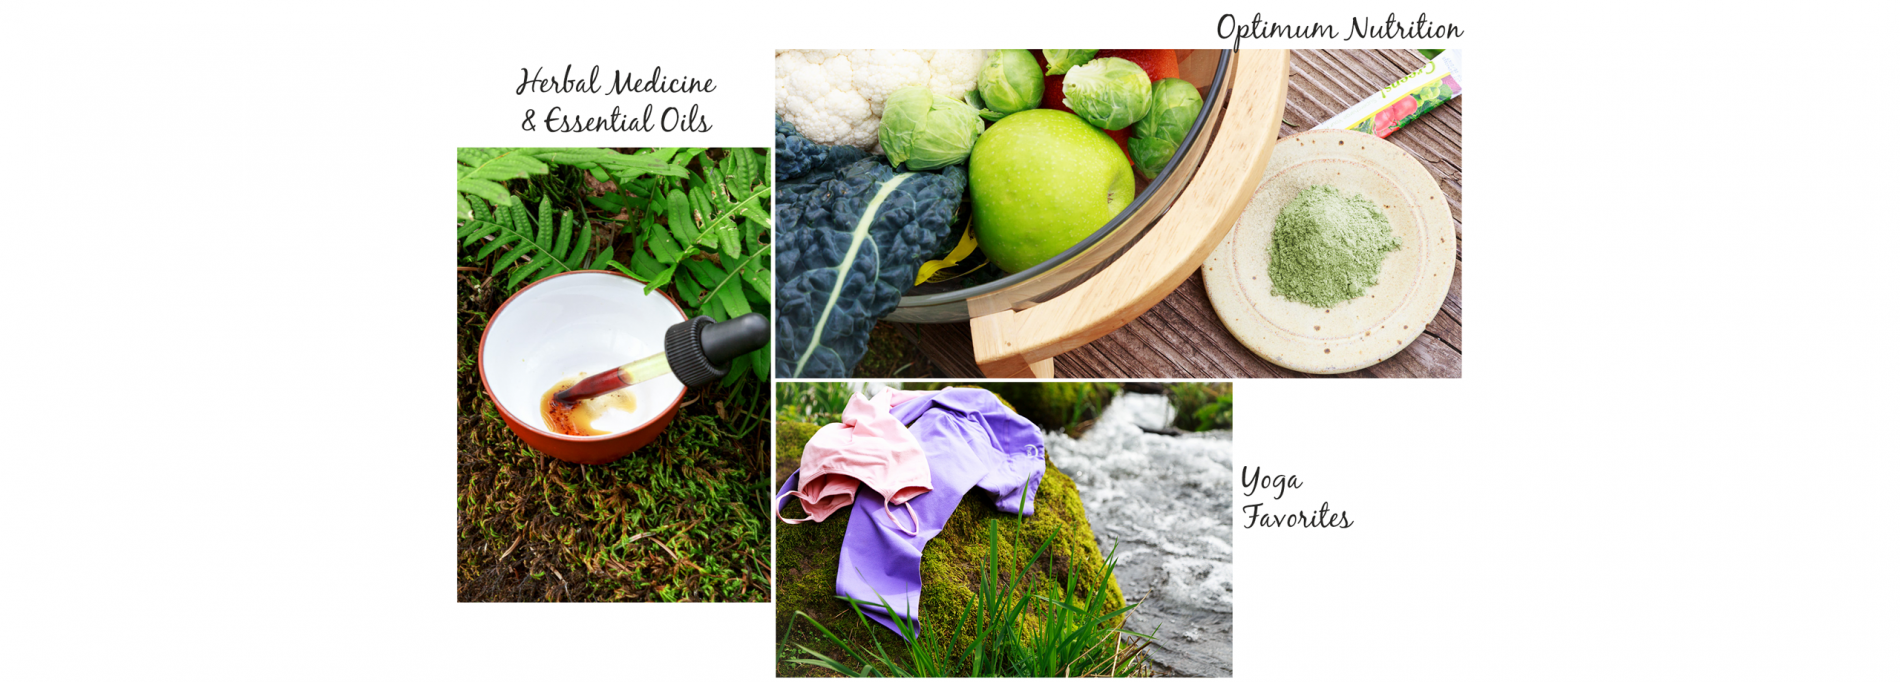 Luminance Shop for Yoga Clothes and Props, Optimum Nutrition, Essential Oils and Herbal Medicine